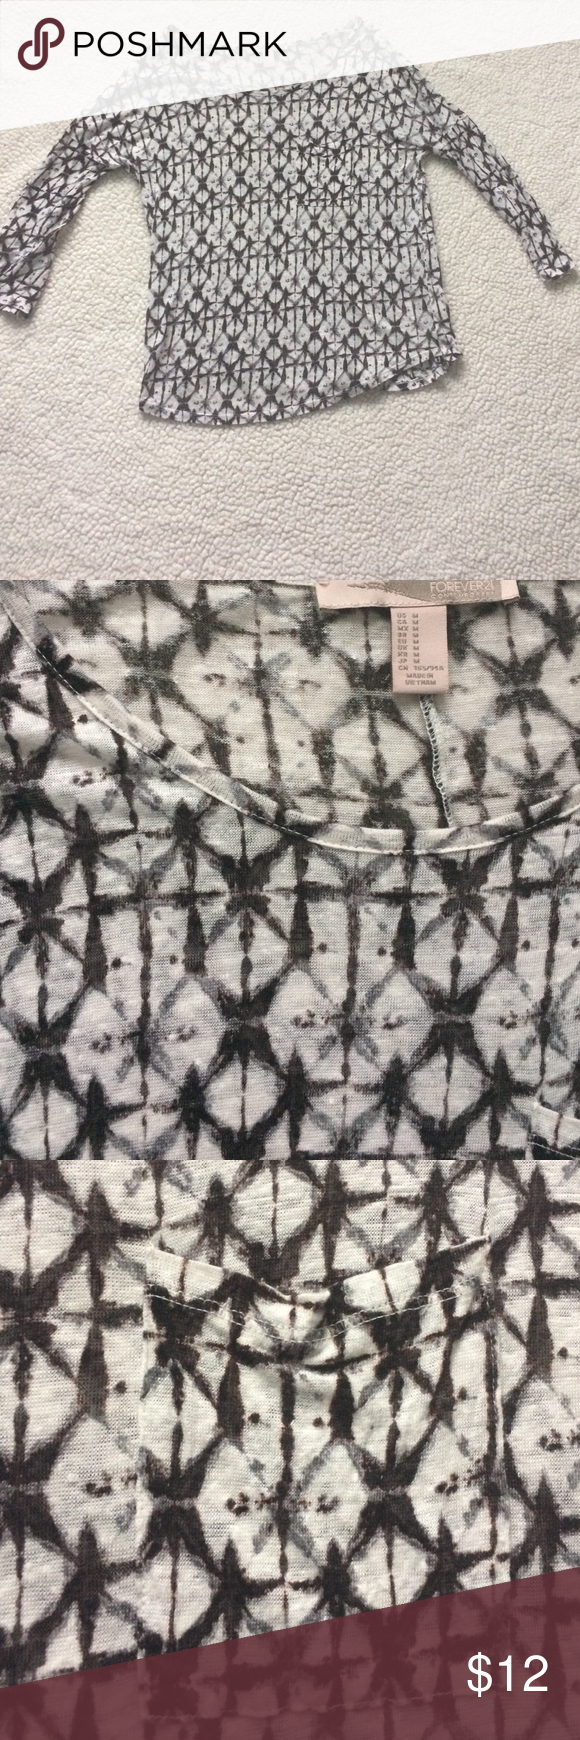 Forever 21 Tribal Top Cute lightweight 3/4 sleeve top. Pocket on top left, EUC! Love this top just never get a chance to wear it! Forever 21 Tops Blouses